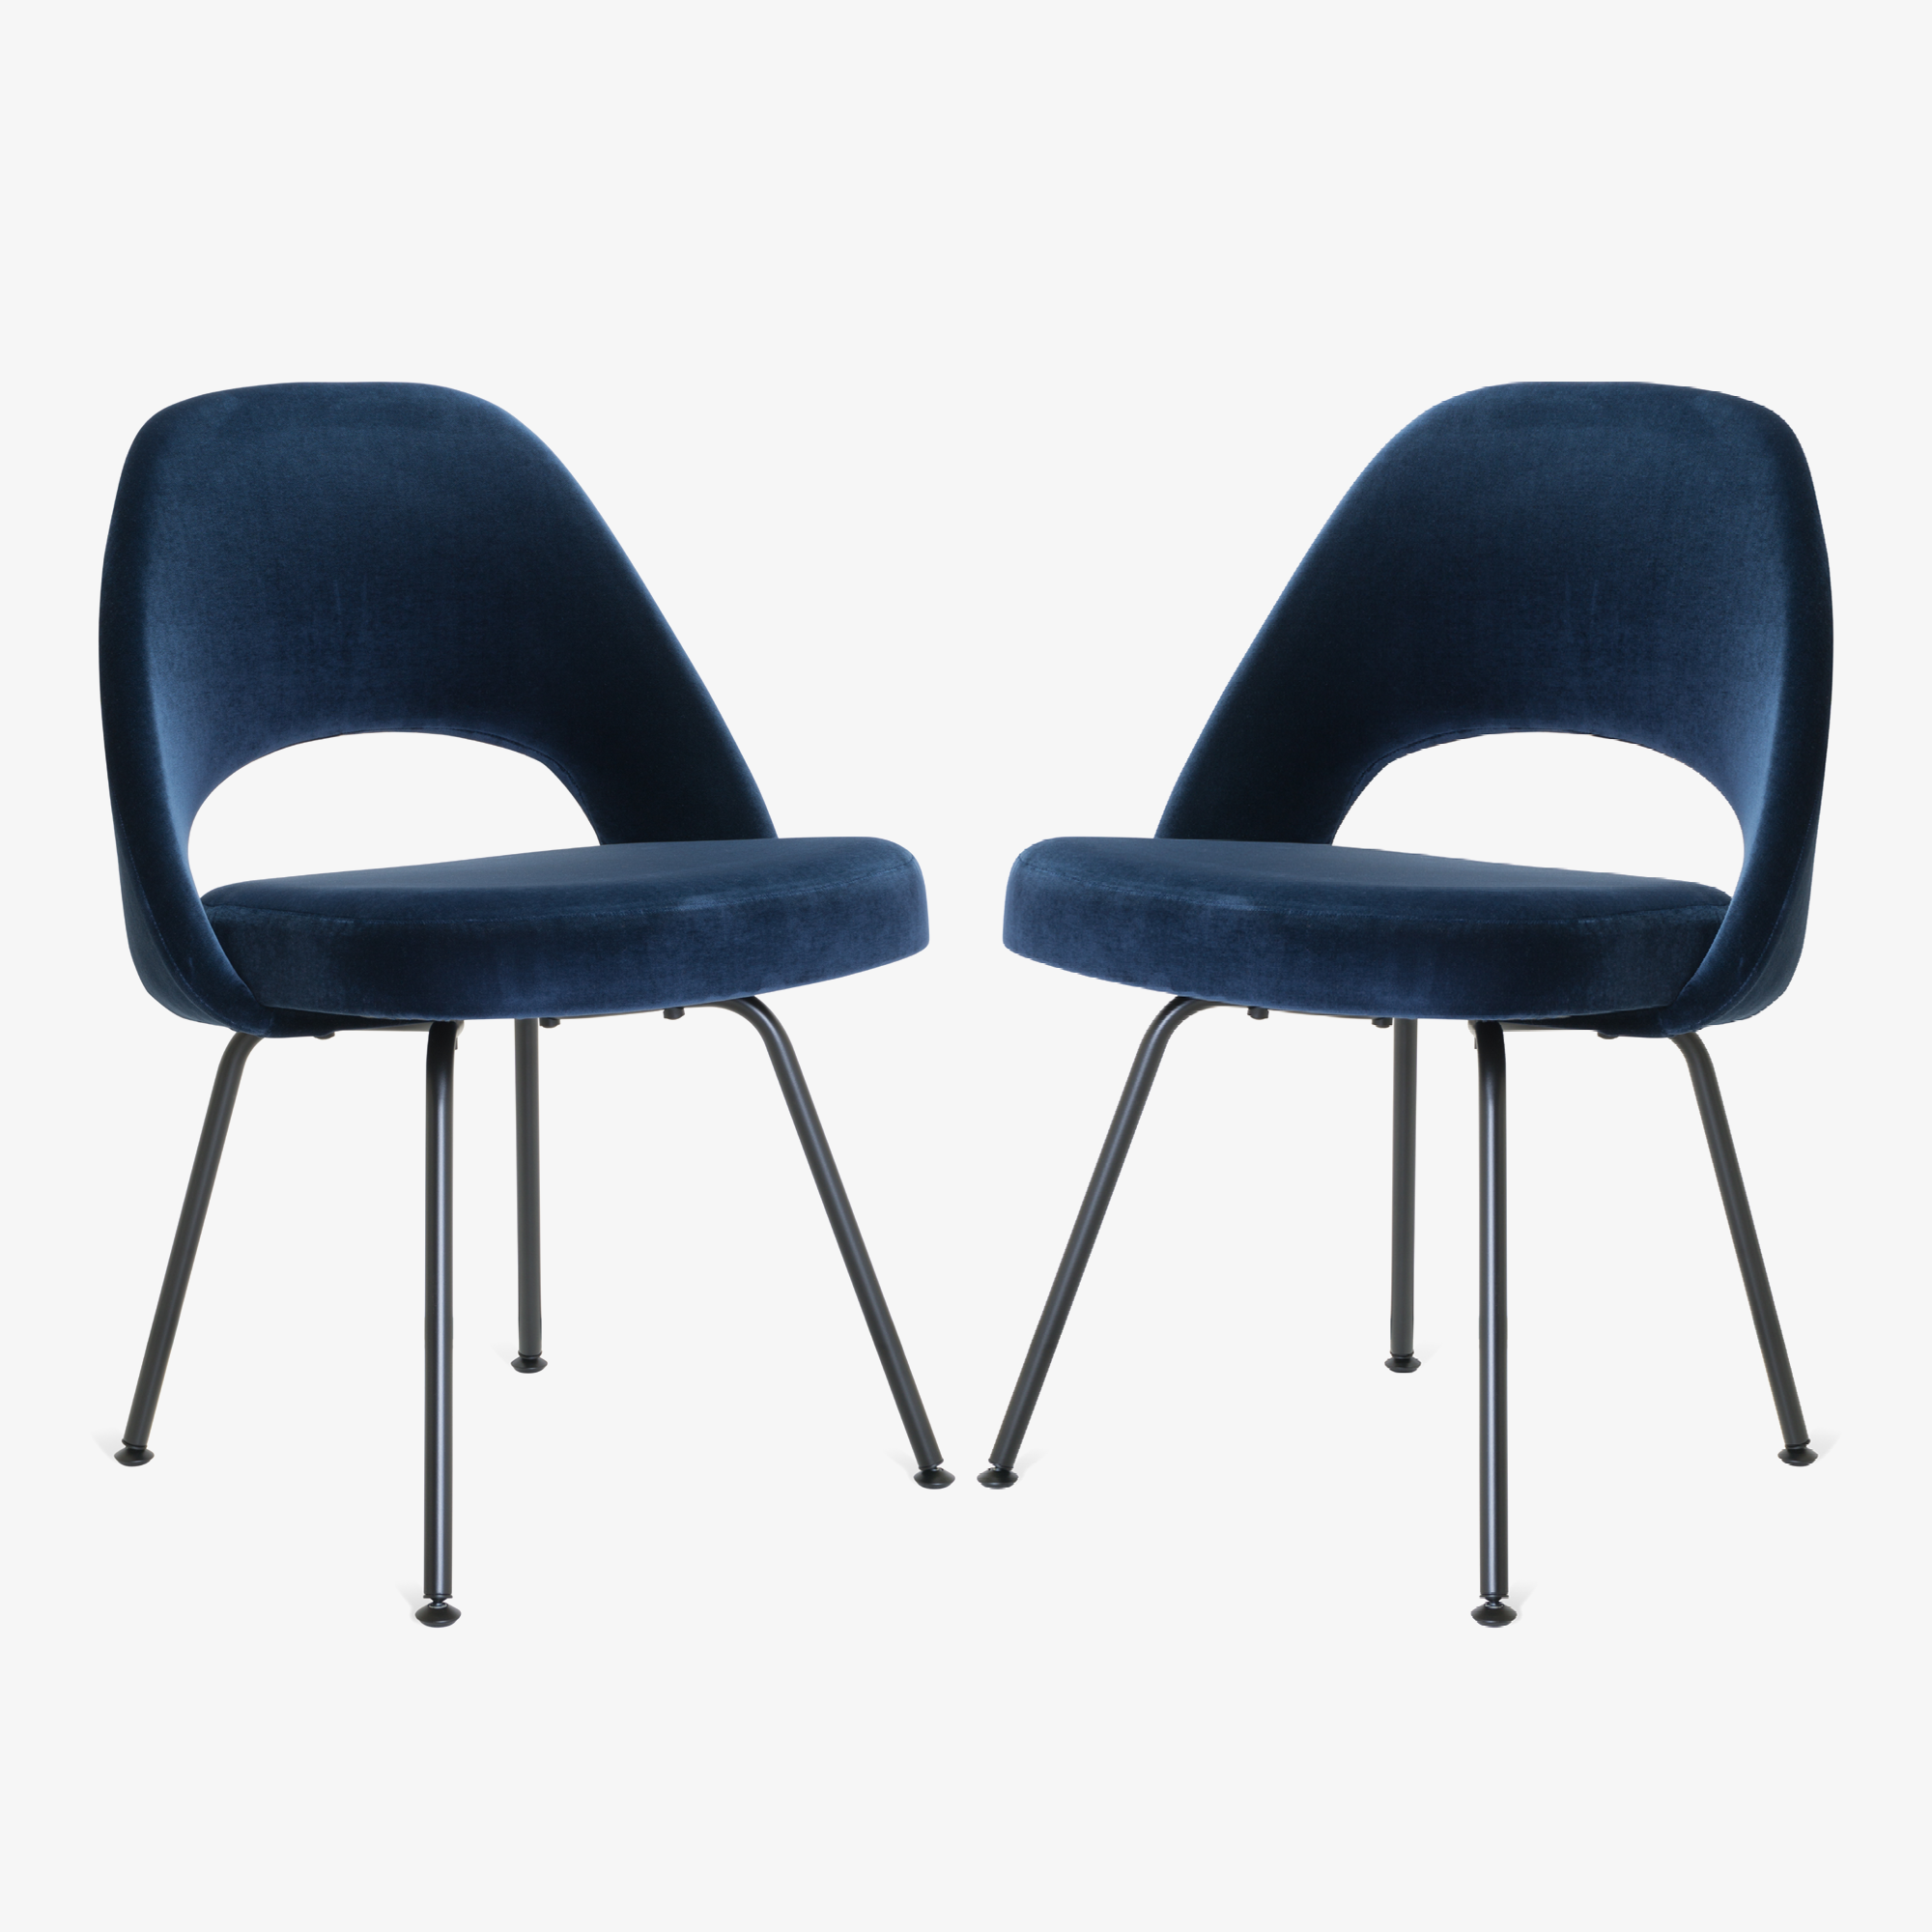 Saarinen Executive Armless Chairs in Navy Velvet, Black Edition3.png